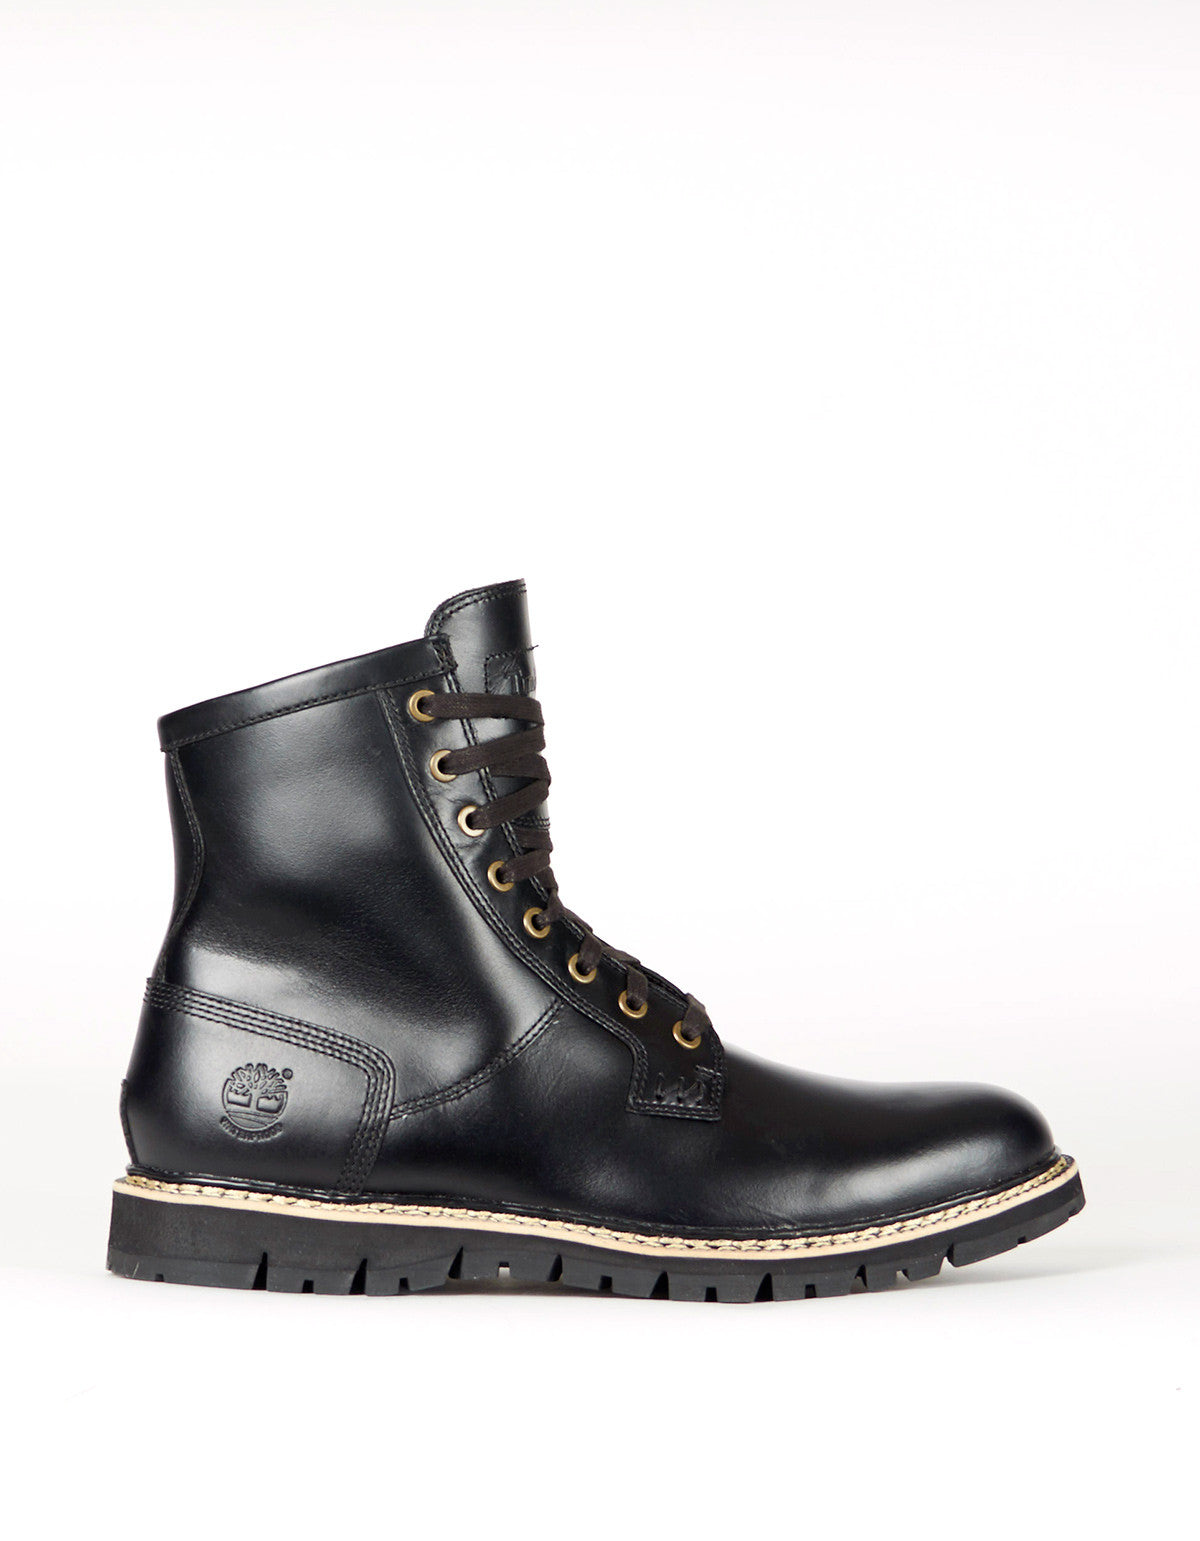 timberland britton hill waterproof plain toe boot black. Black Bedroom Furniture Sets. Home Design Ideas